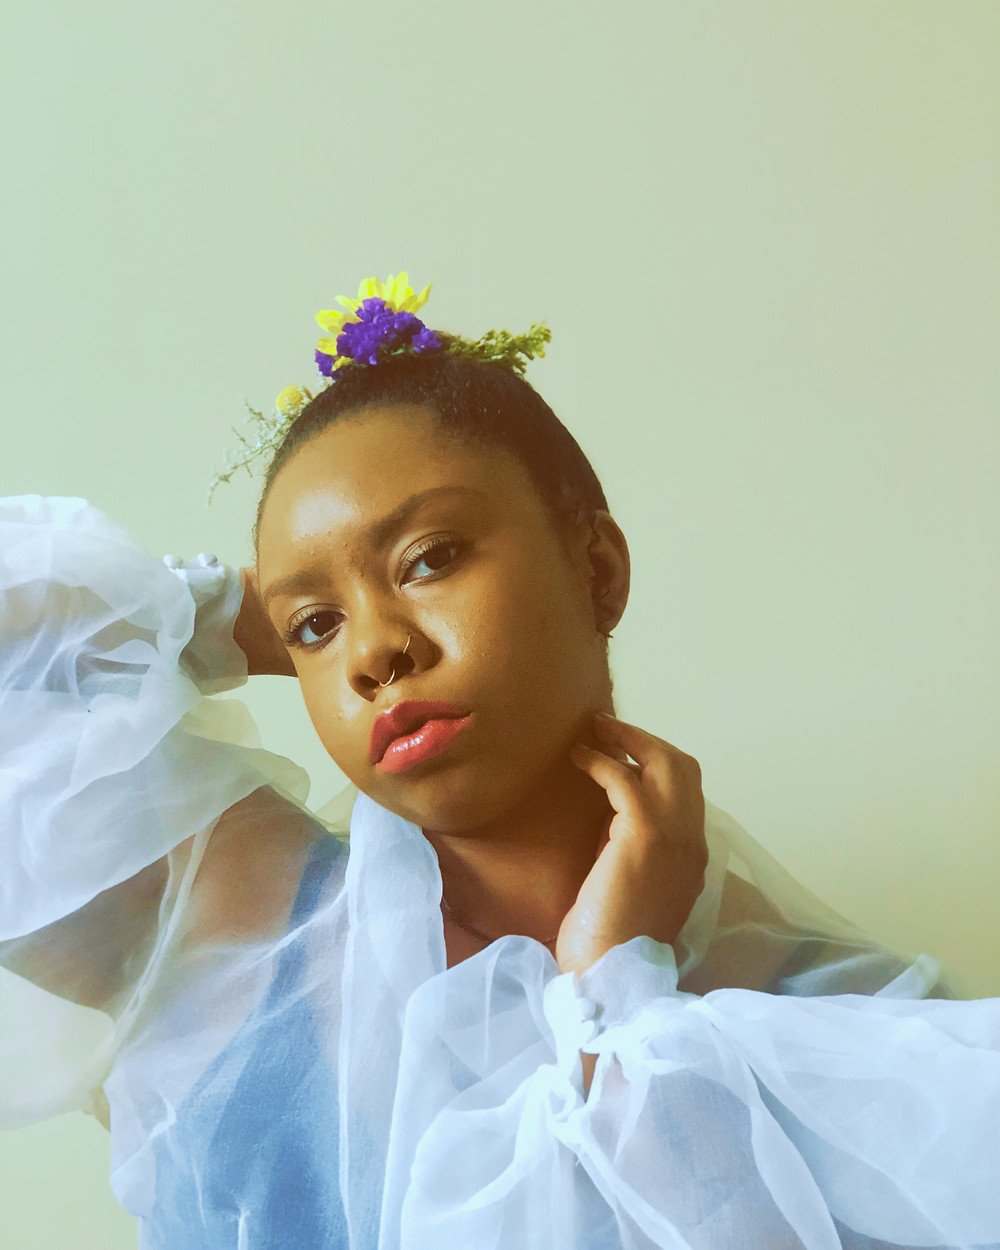 Picture of Kameryn, a black woman with a gauzy white shirt and flowers in her hair.